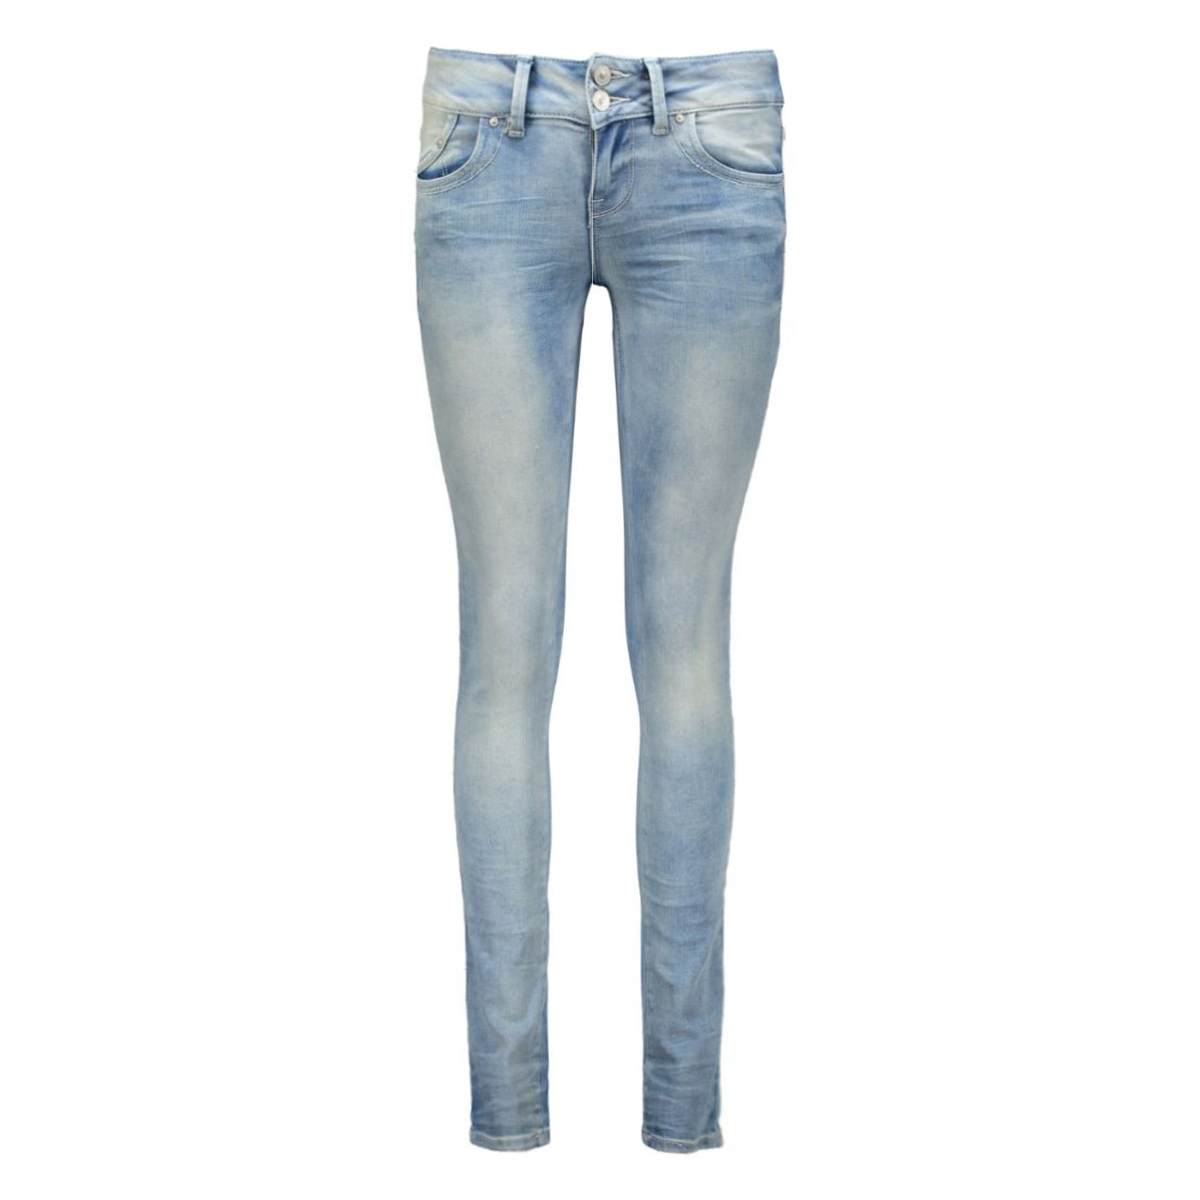 100950982.13553 molly ltb jeans minda wash